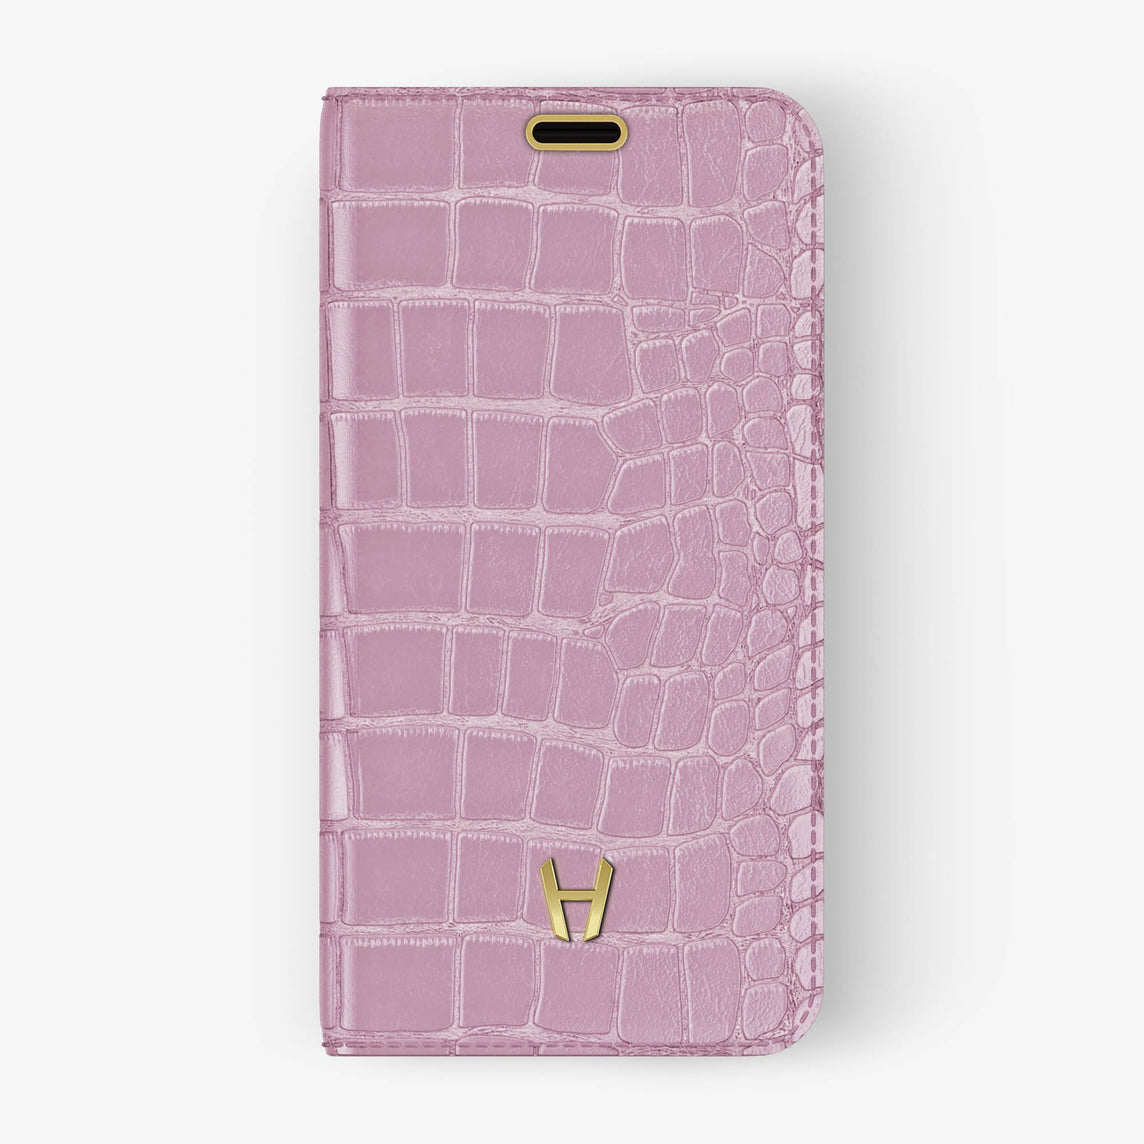 Pink Alligator iPhone Folio Case for iPhone XS Max finishing yellow gold - Hadoro Luxury Cases